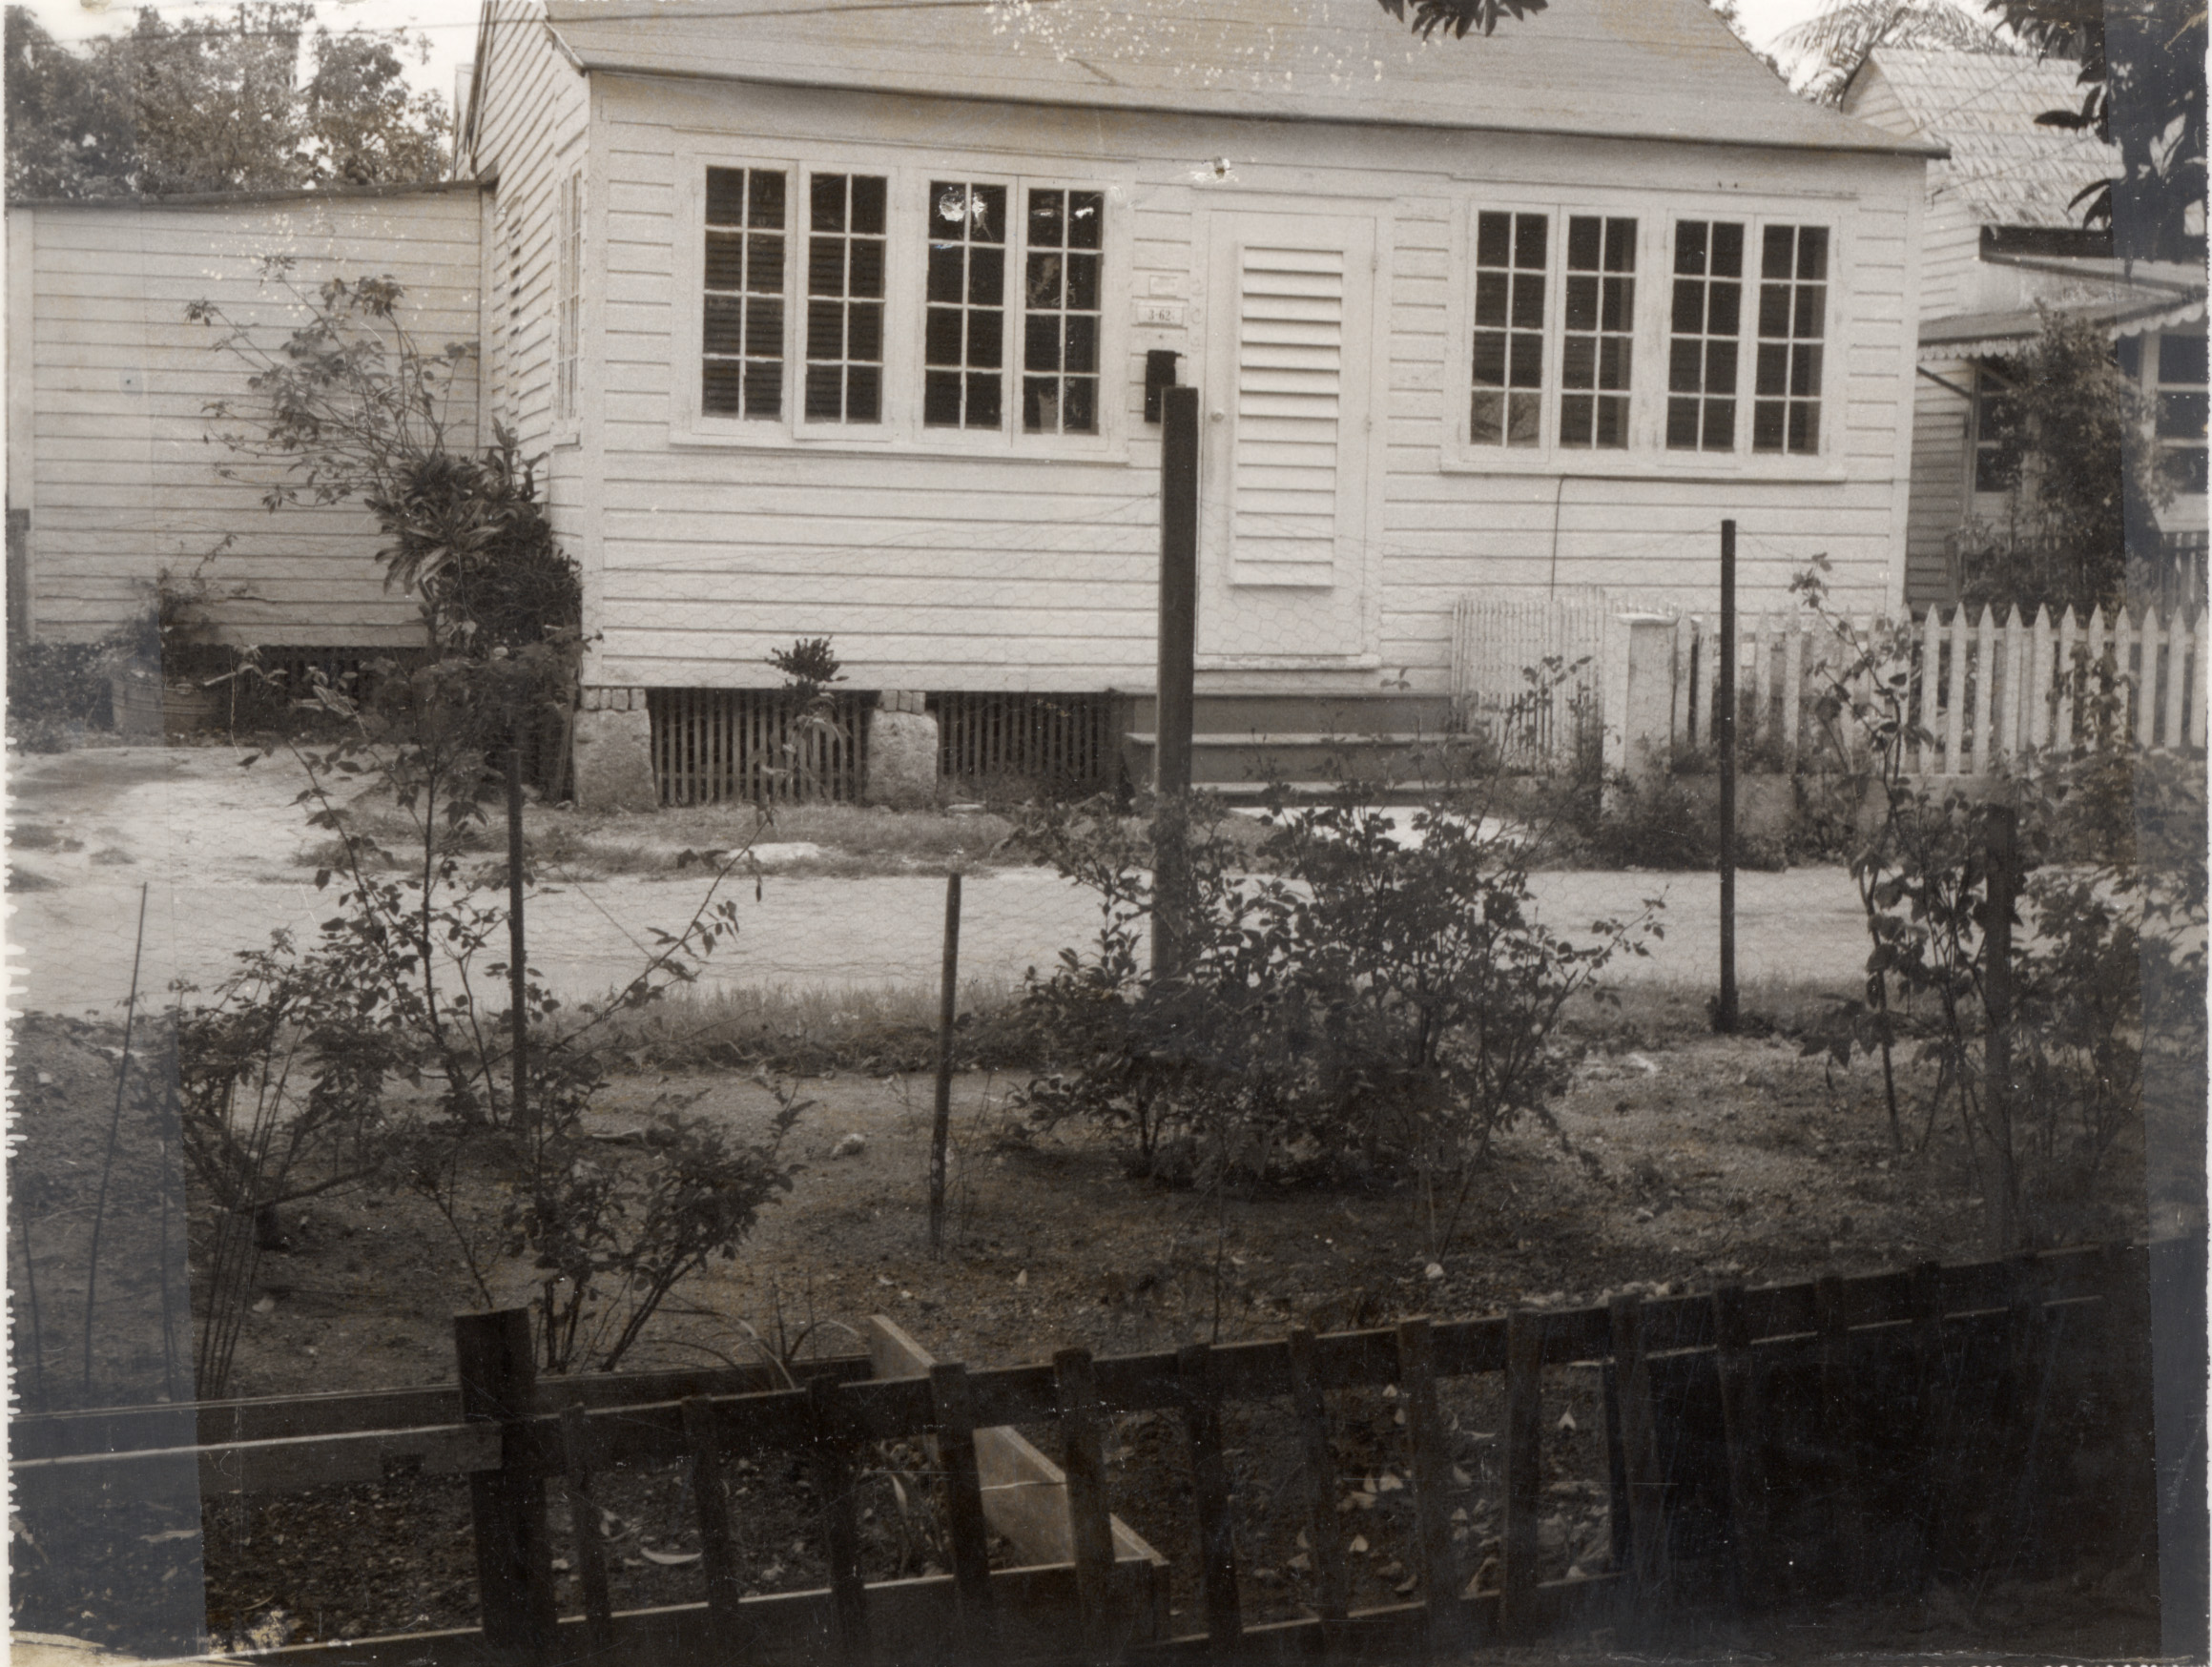 Photo taken by the Property Appraiser's office c1965; 1209 Knowles Lane; built 1920's; Gwynn Sub, Pt Tract 13